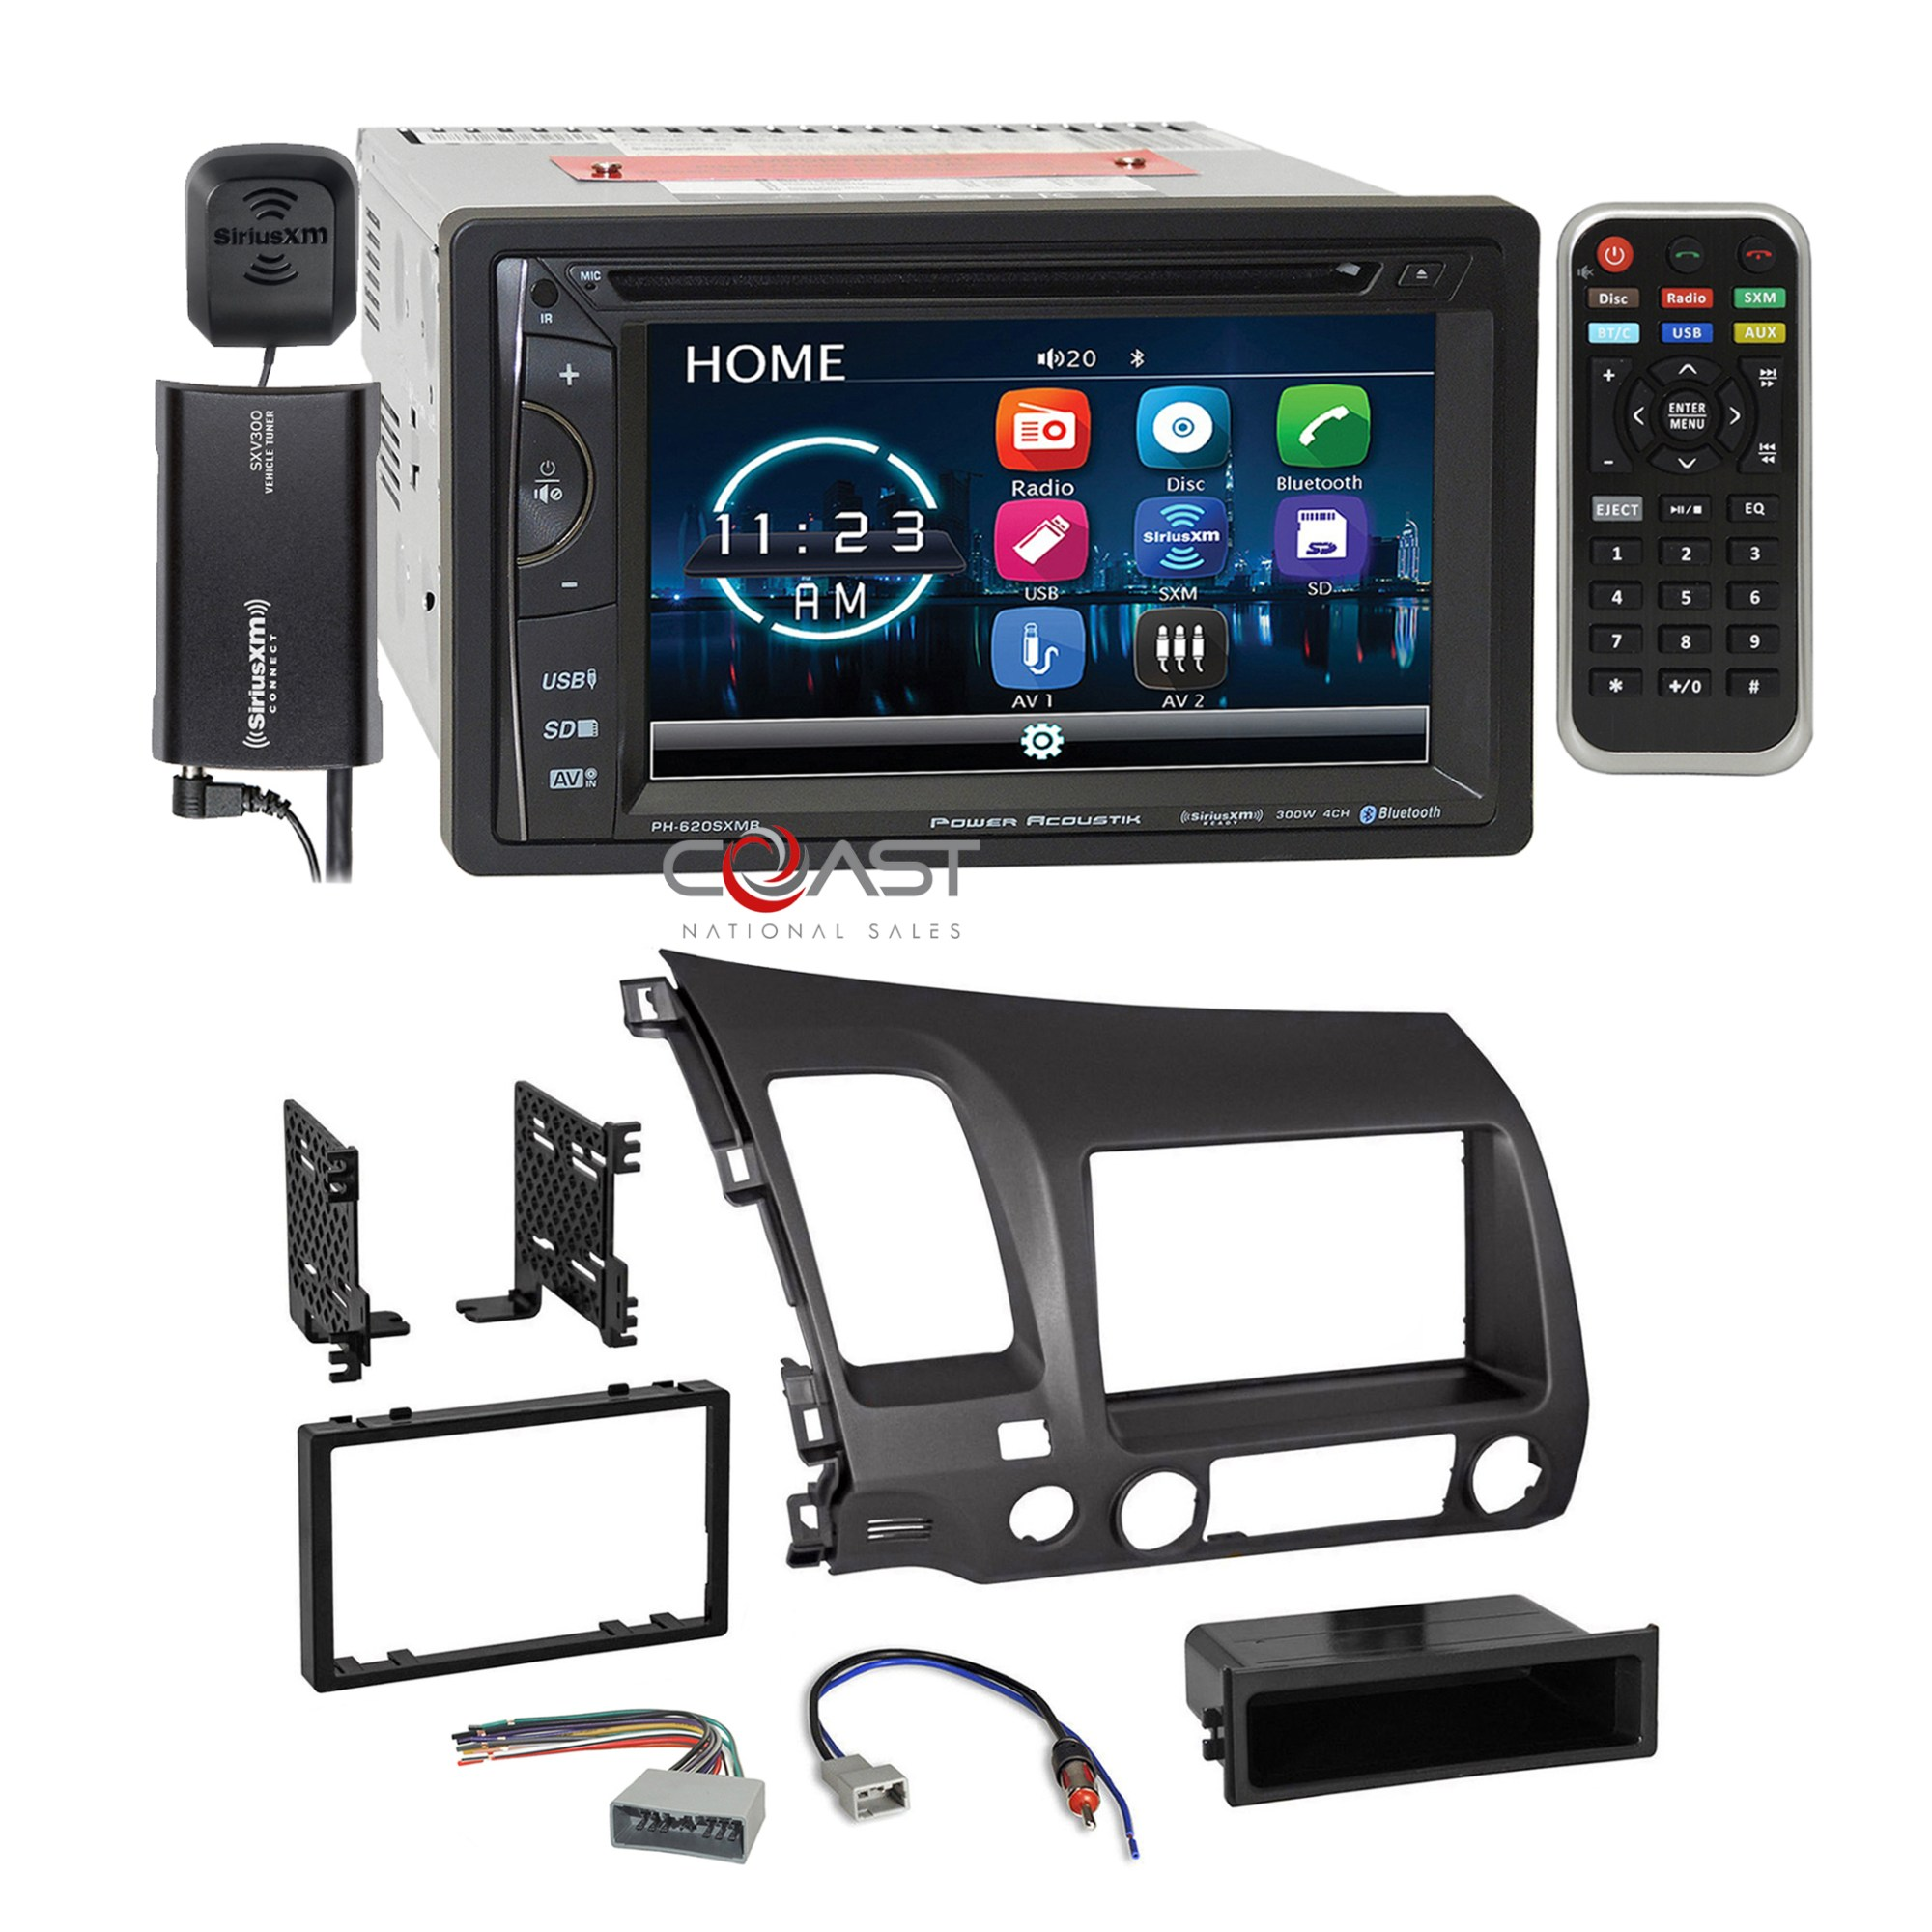 hight resolution of details about power acoustik dvd sirius stereo grey dash kit harness for 2006 11 honda civic